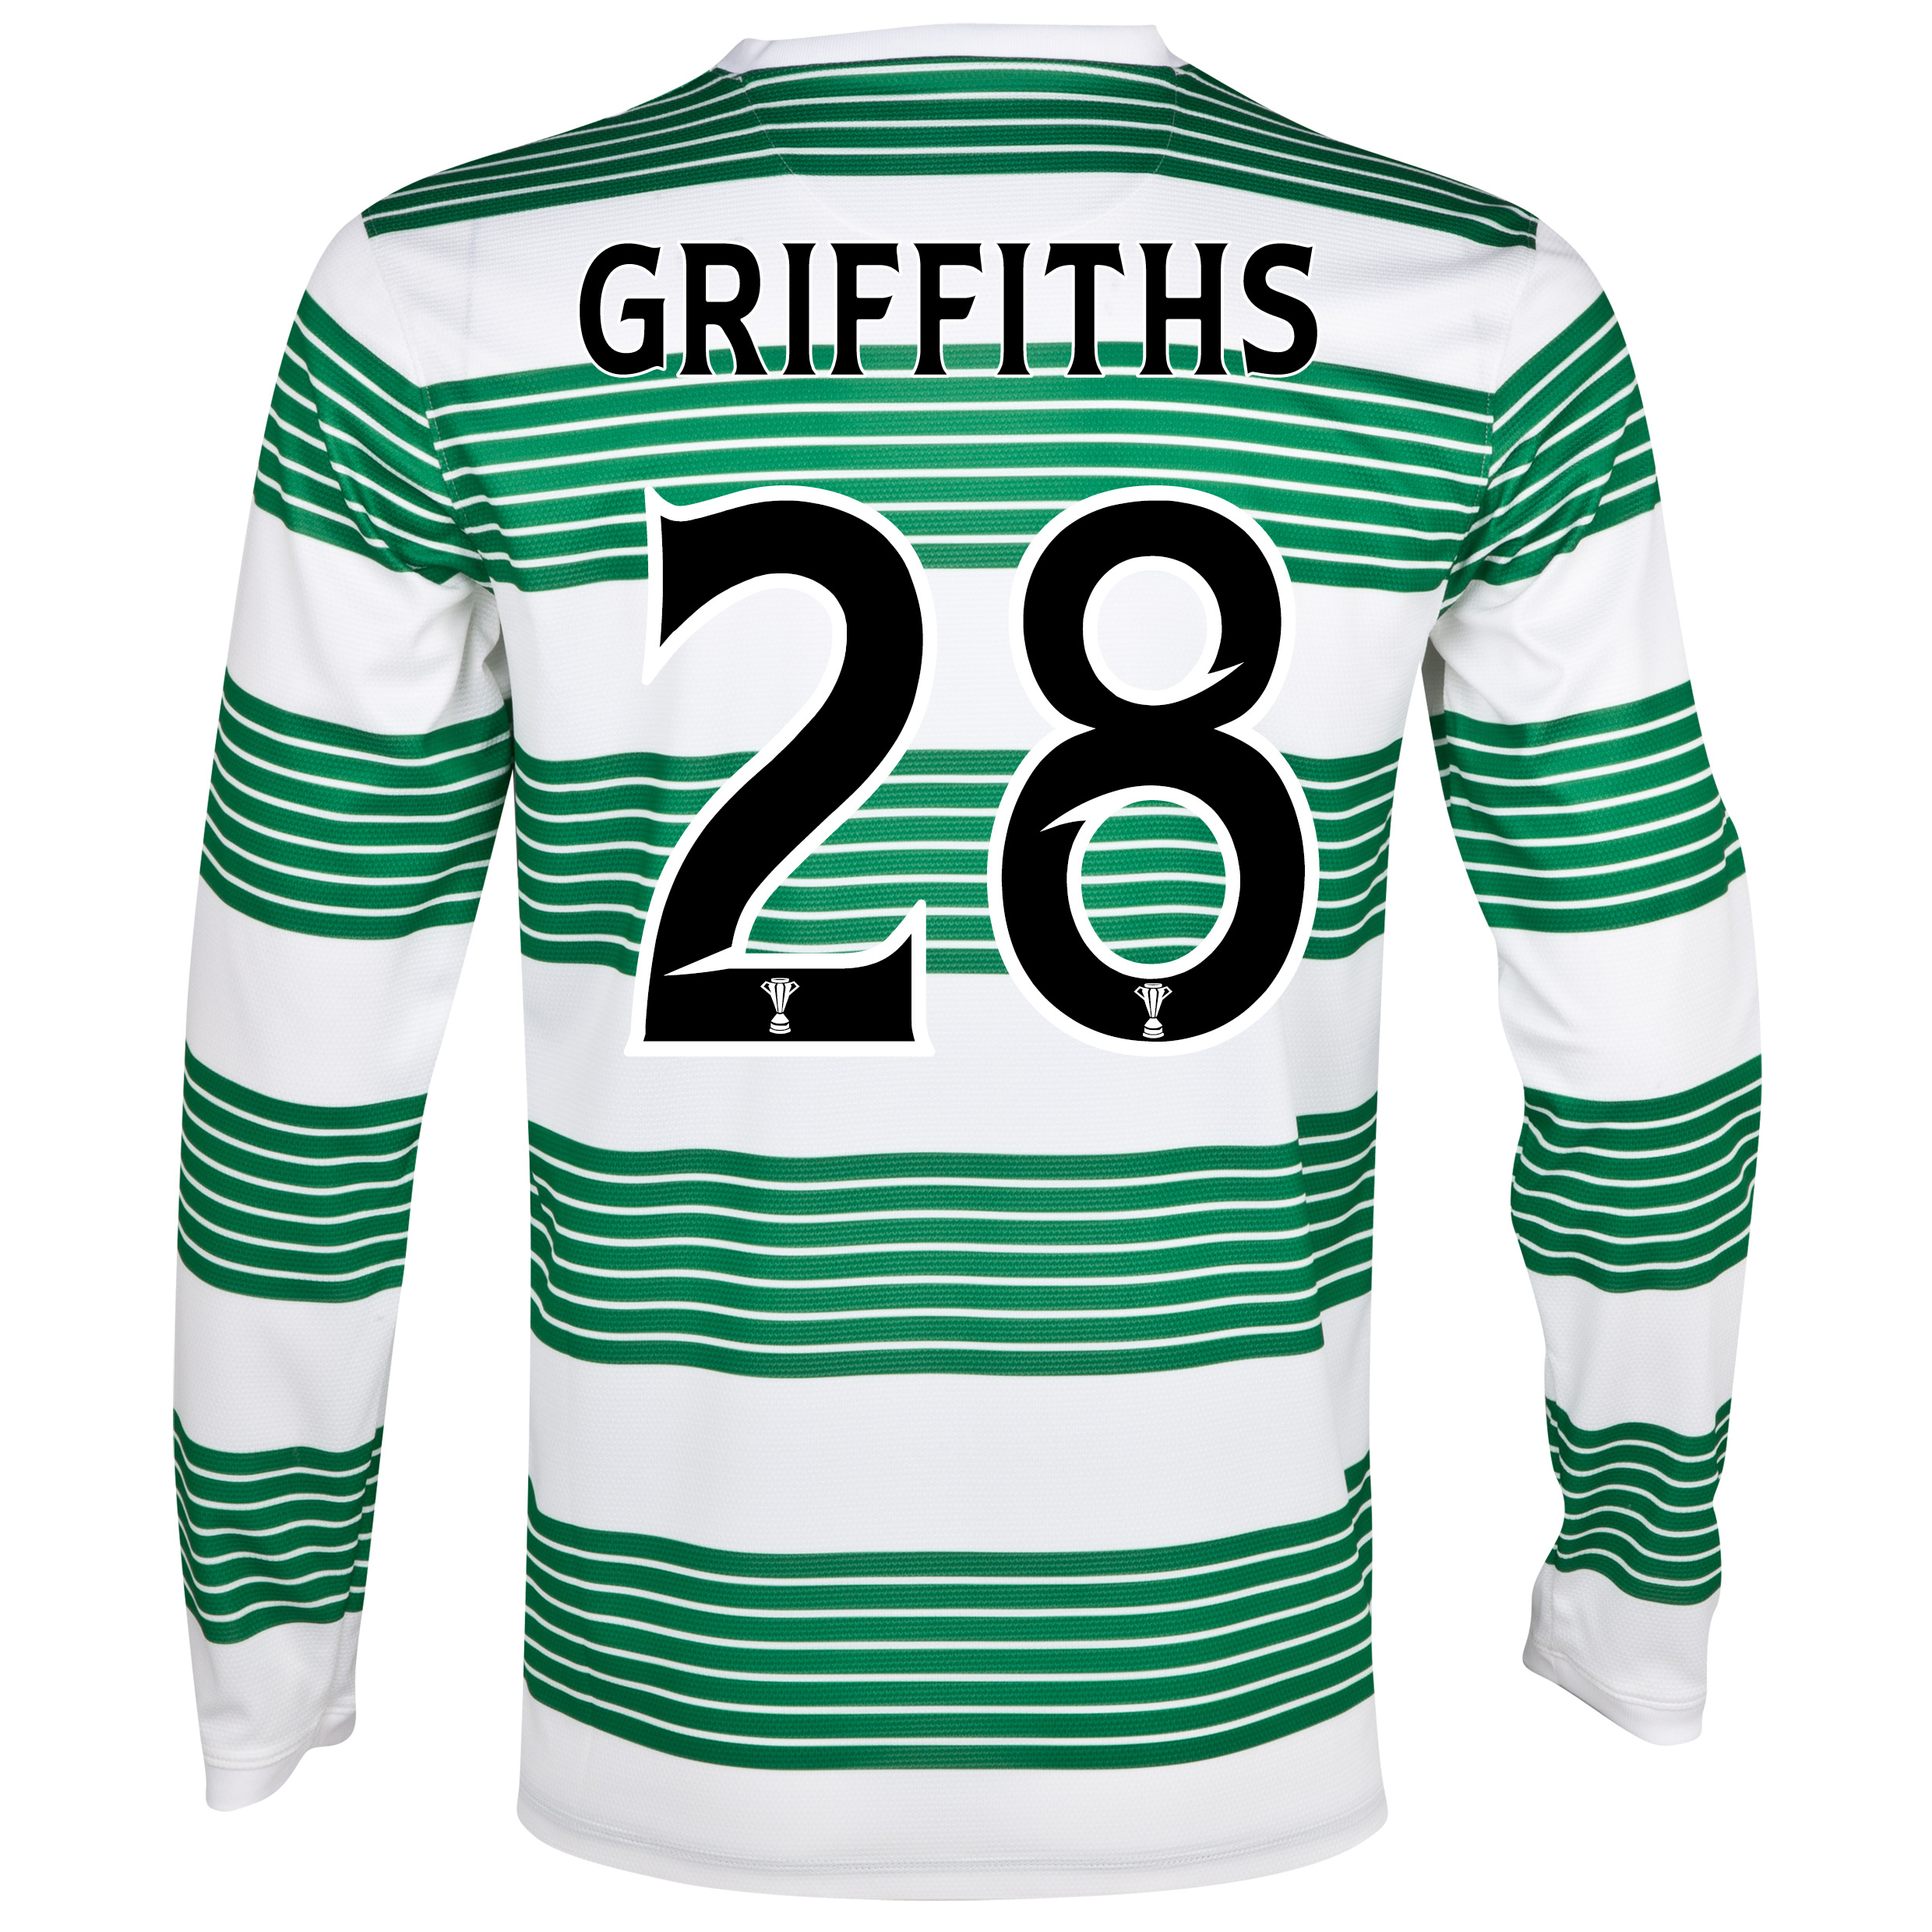 Celtic Home Shirt 2013/15 - L/S- With Sponsor with Griffiths 28 printing